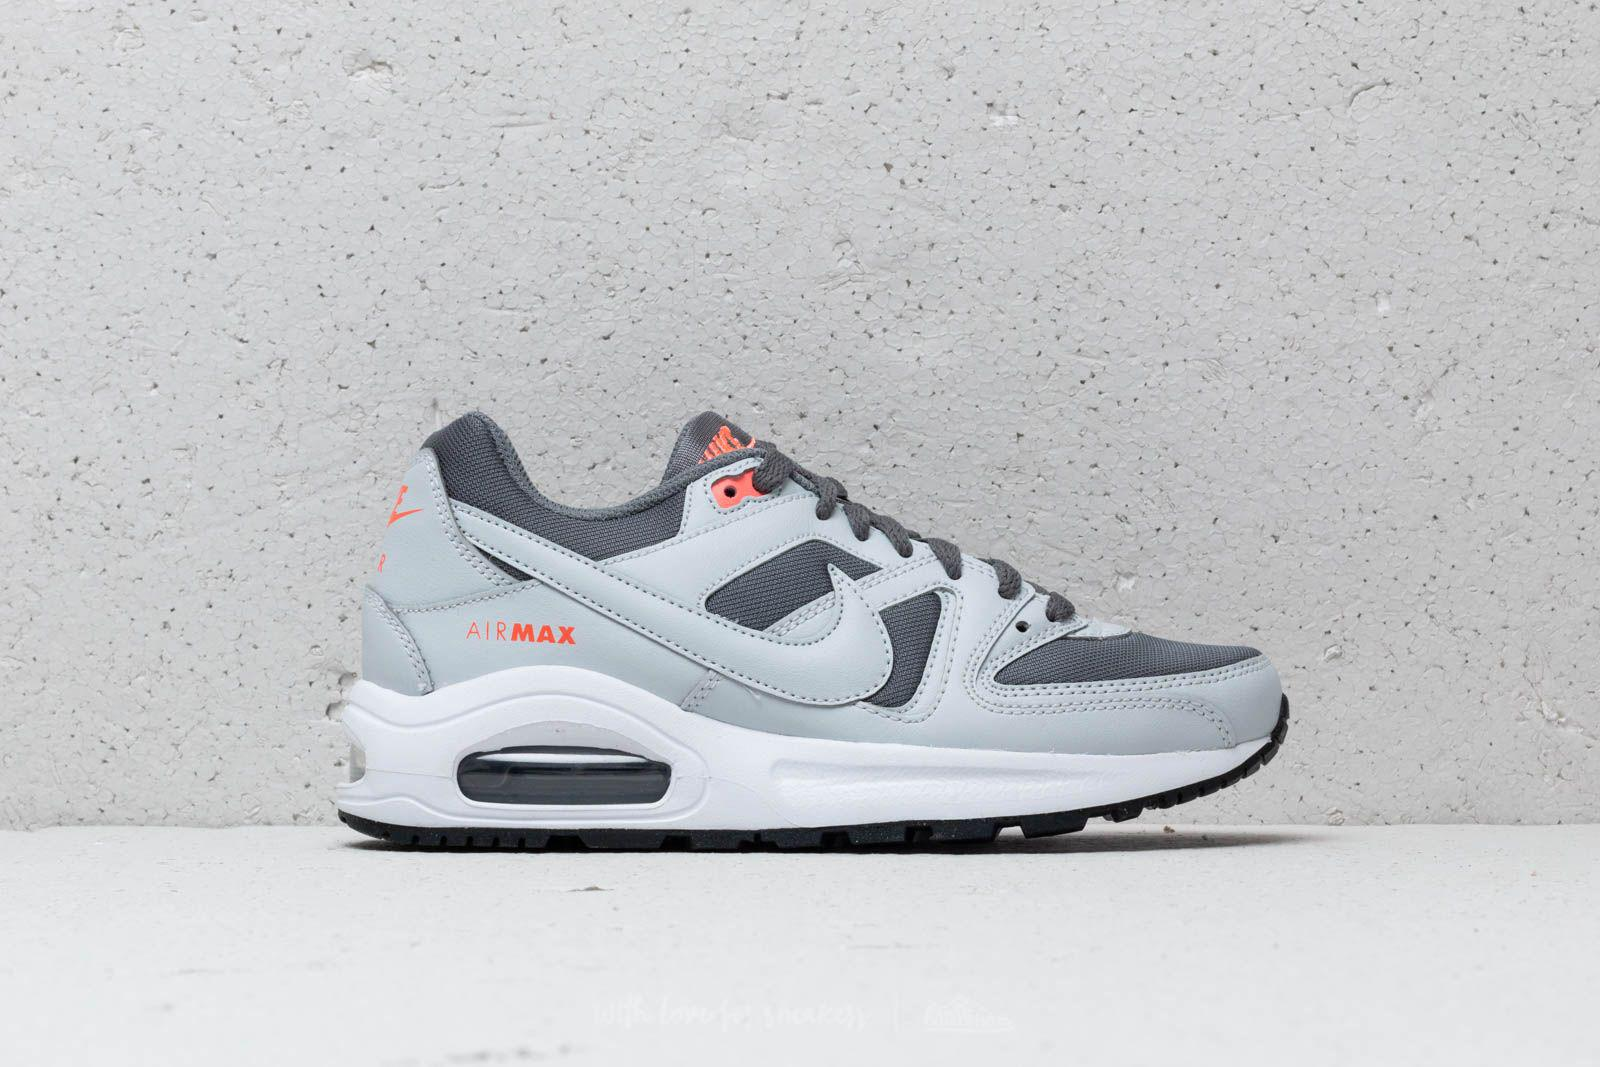 6cece21160 Nike Air Max Command Flex (gs) Cool Grey/ Pure Platinum in Gray - Lyst